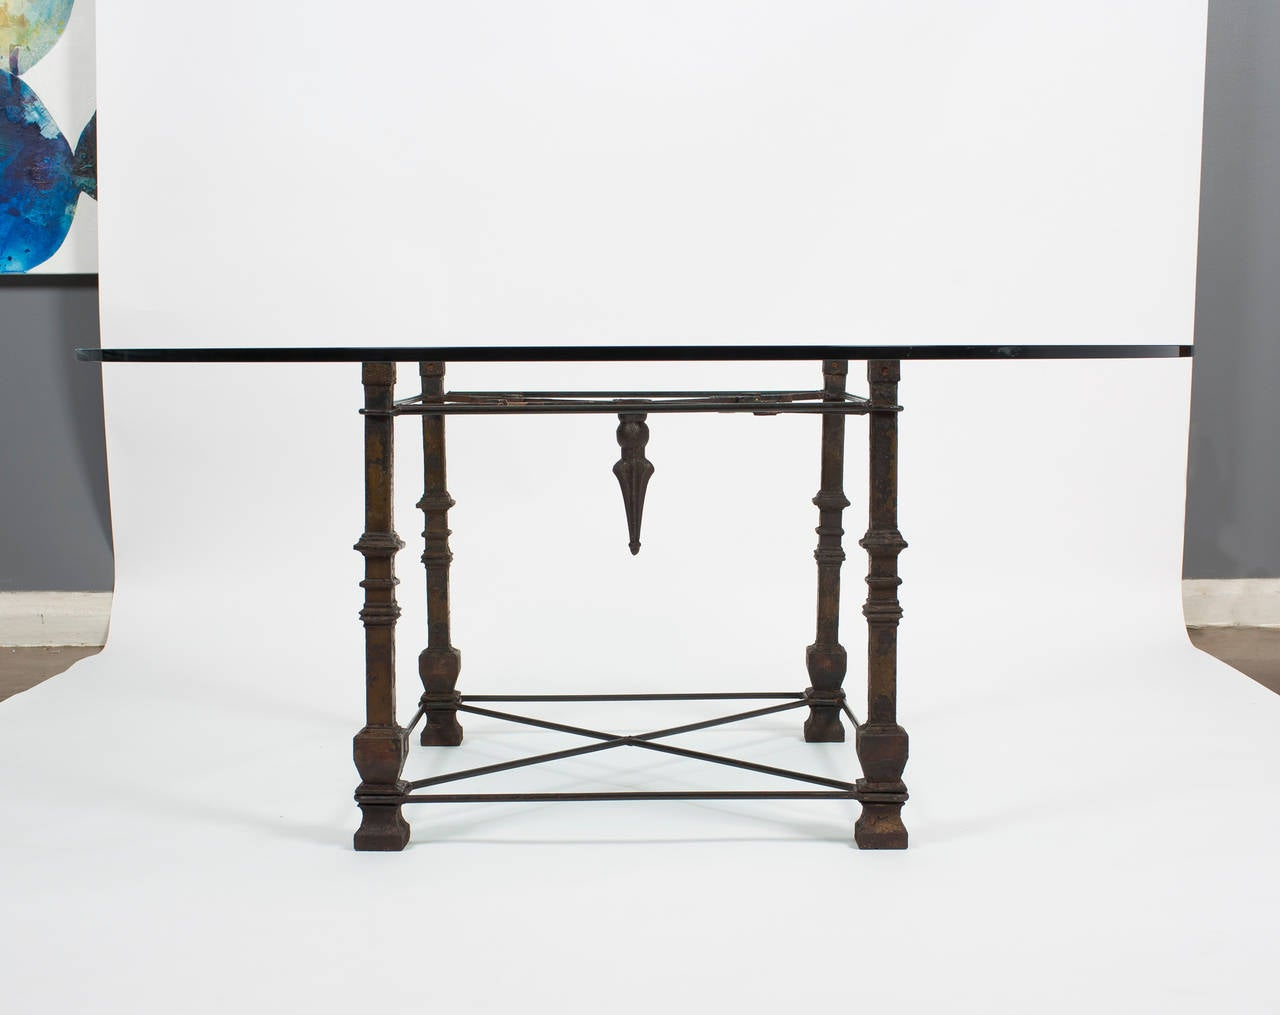 Antique forged iron dining table with glass top at 1stdibs for Best dining room tables